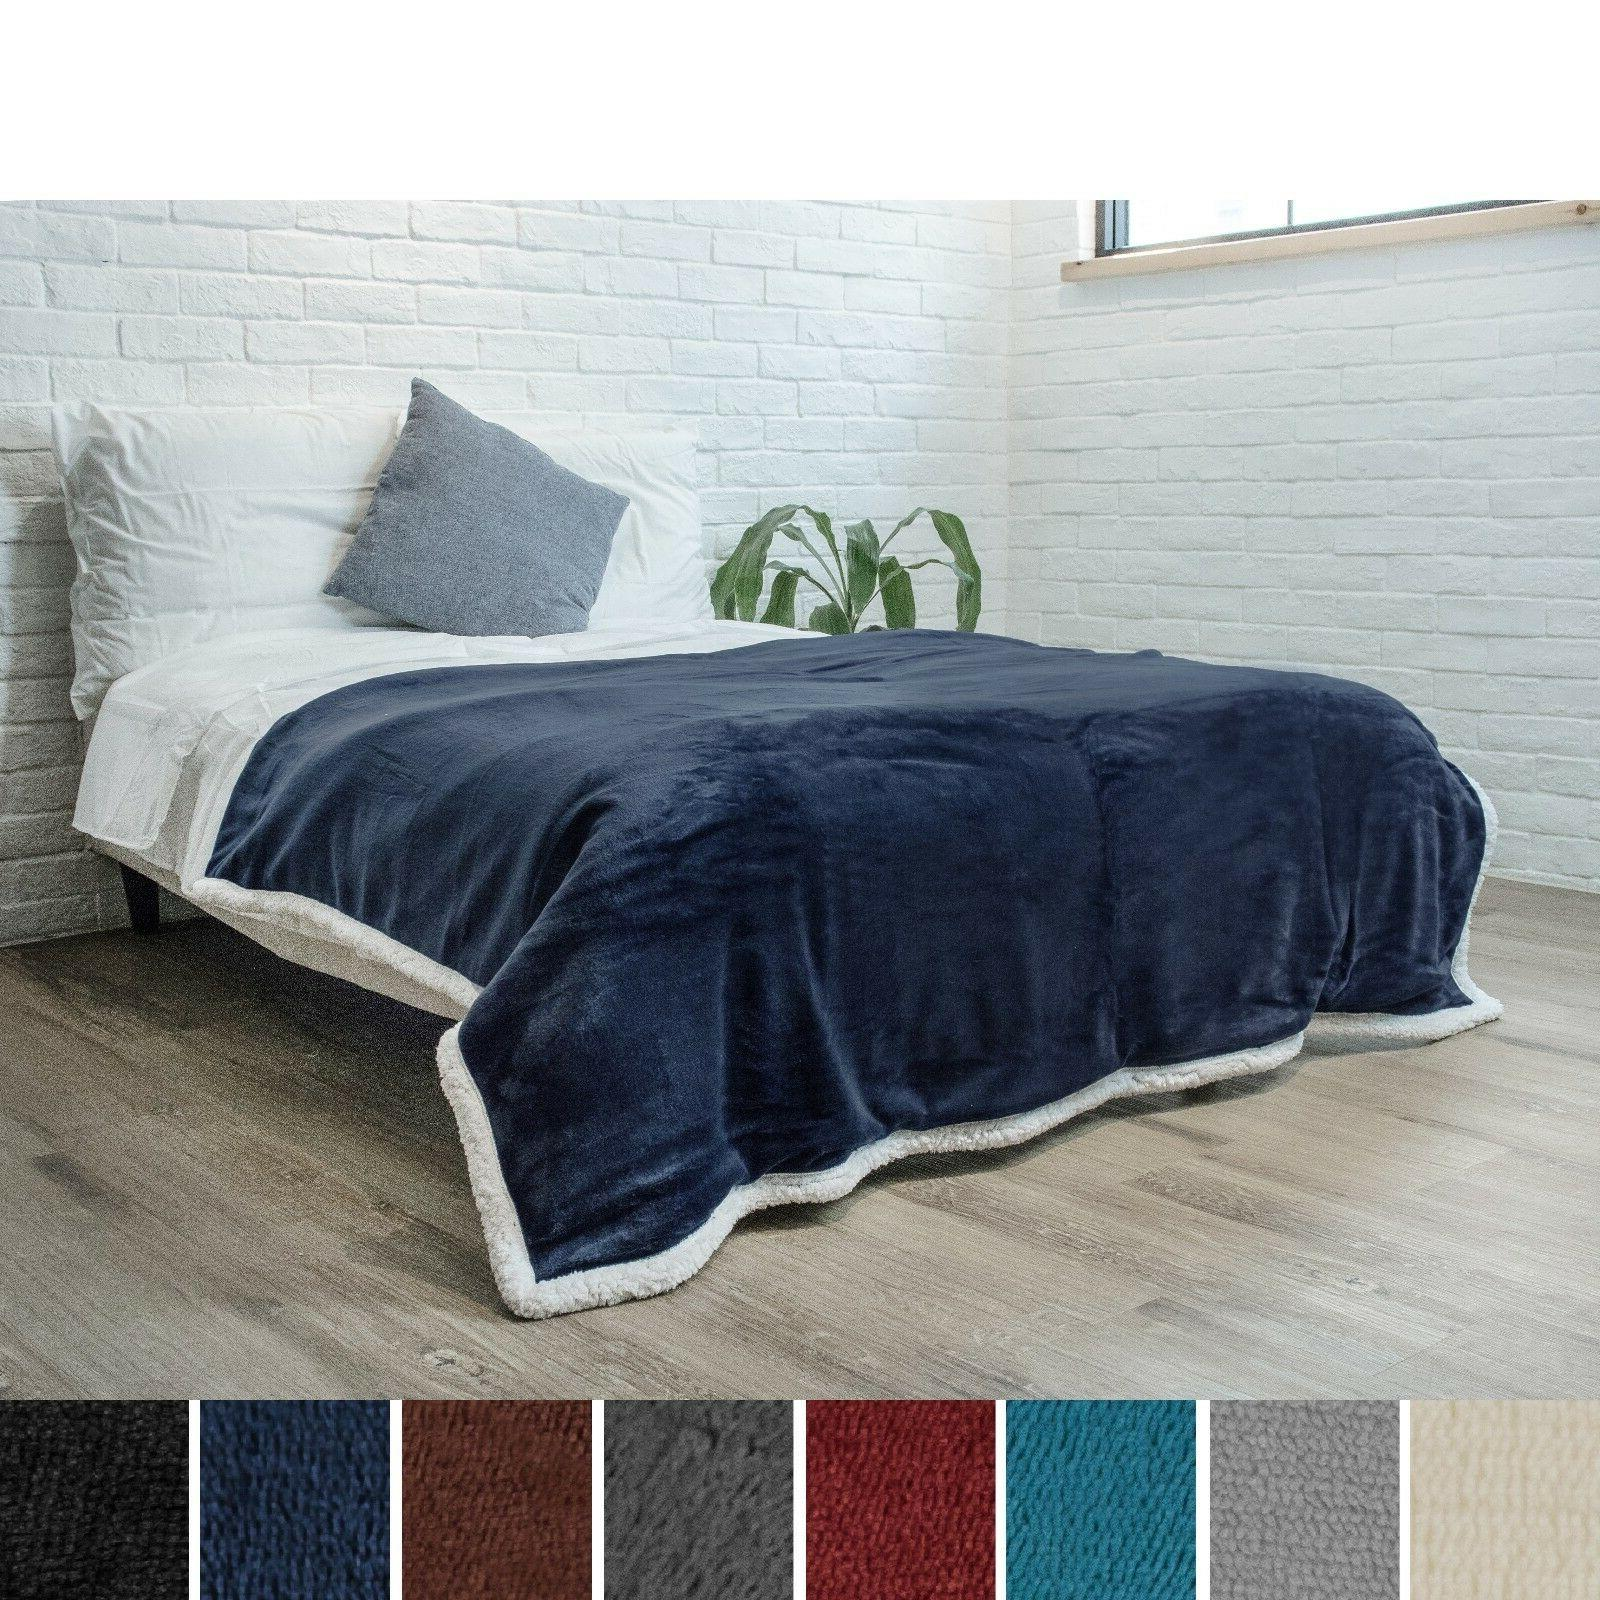 "Premium Sherpa Throw Blanket 60"" x 80"" Reversible Microfiber"